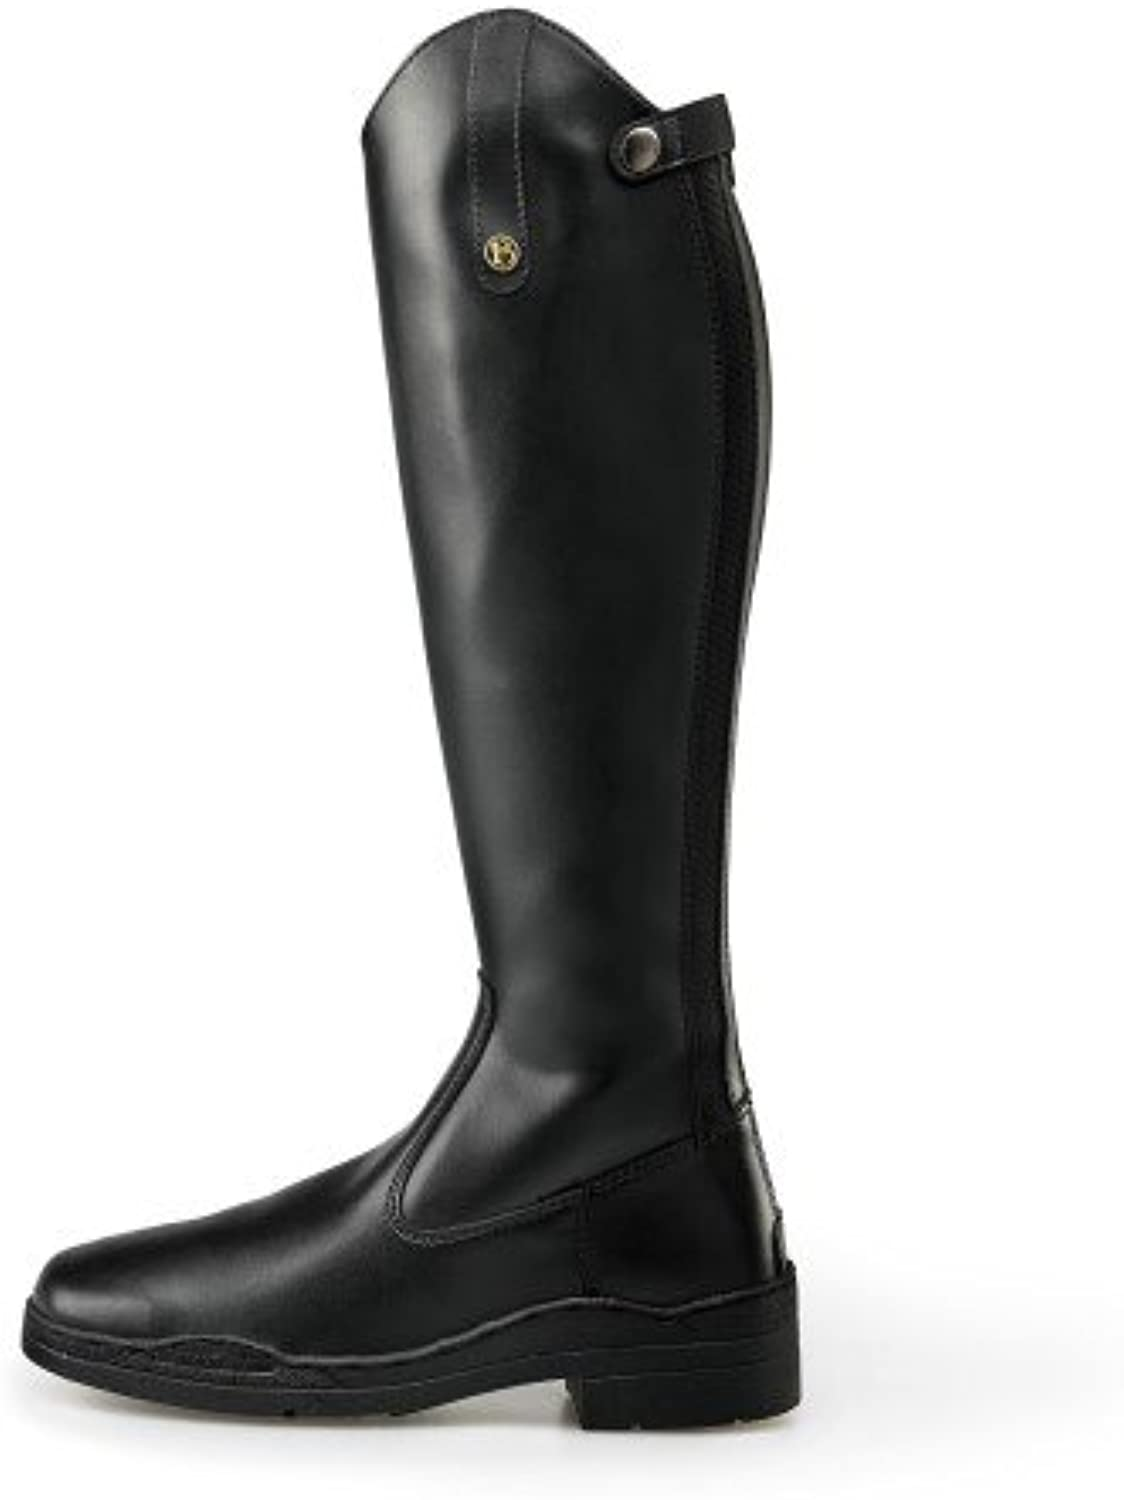 Brogini Modena Synthetic Long Riding Boot Adults x Size  39 (6) Wide